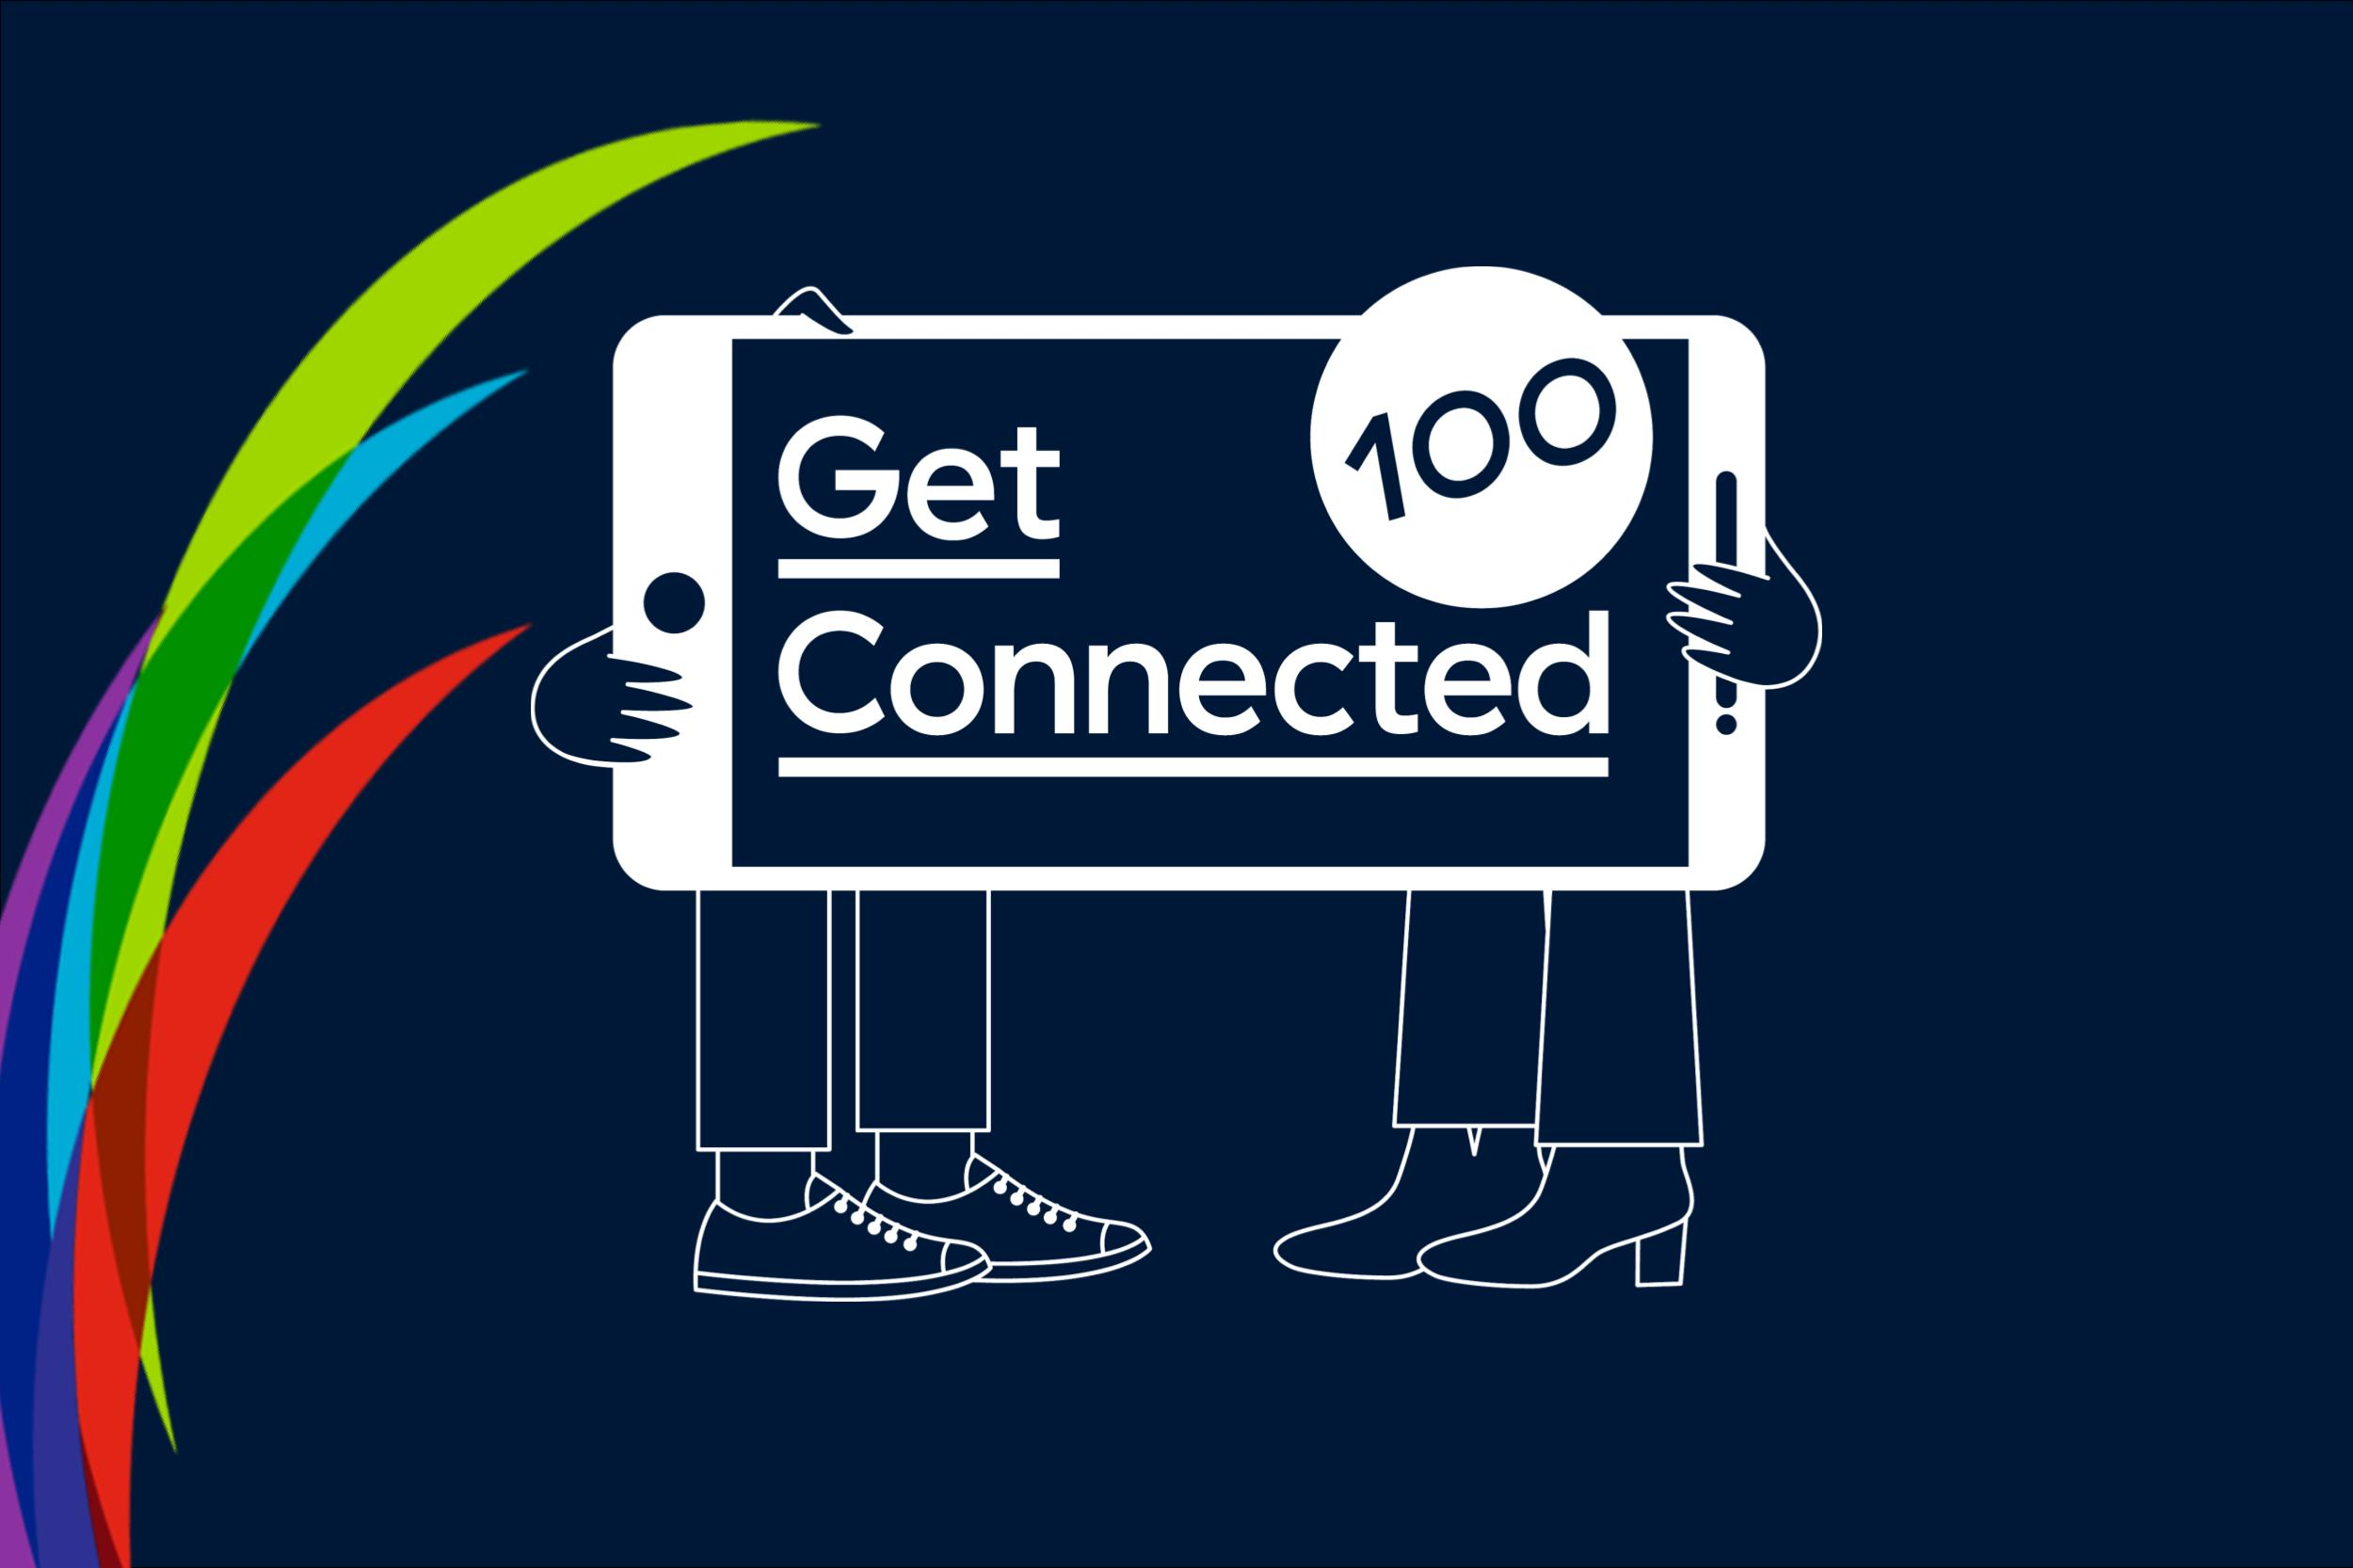 Launching Get Connected 100